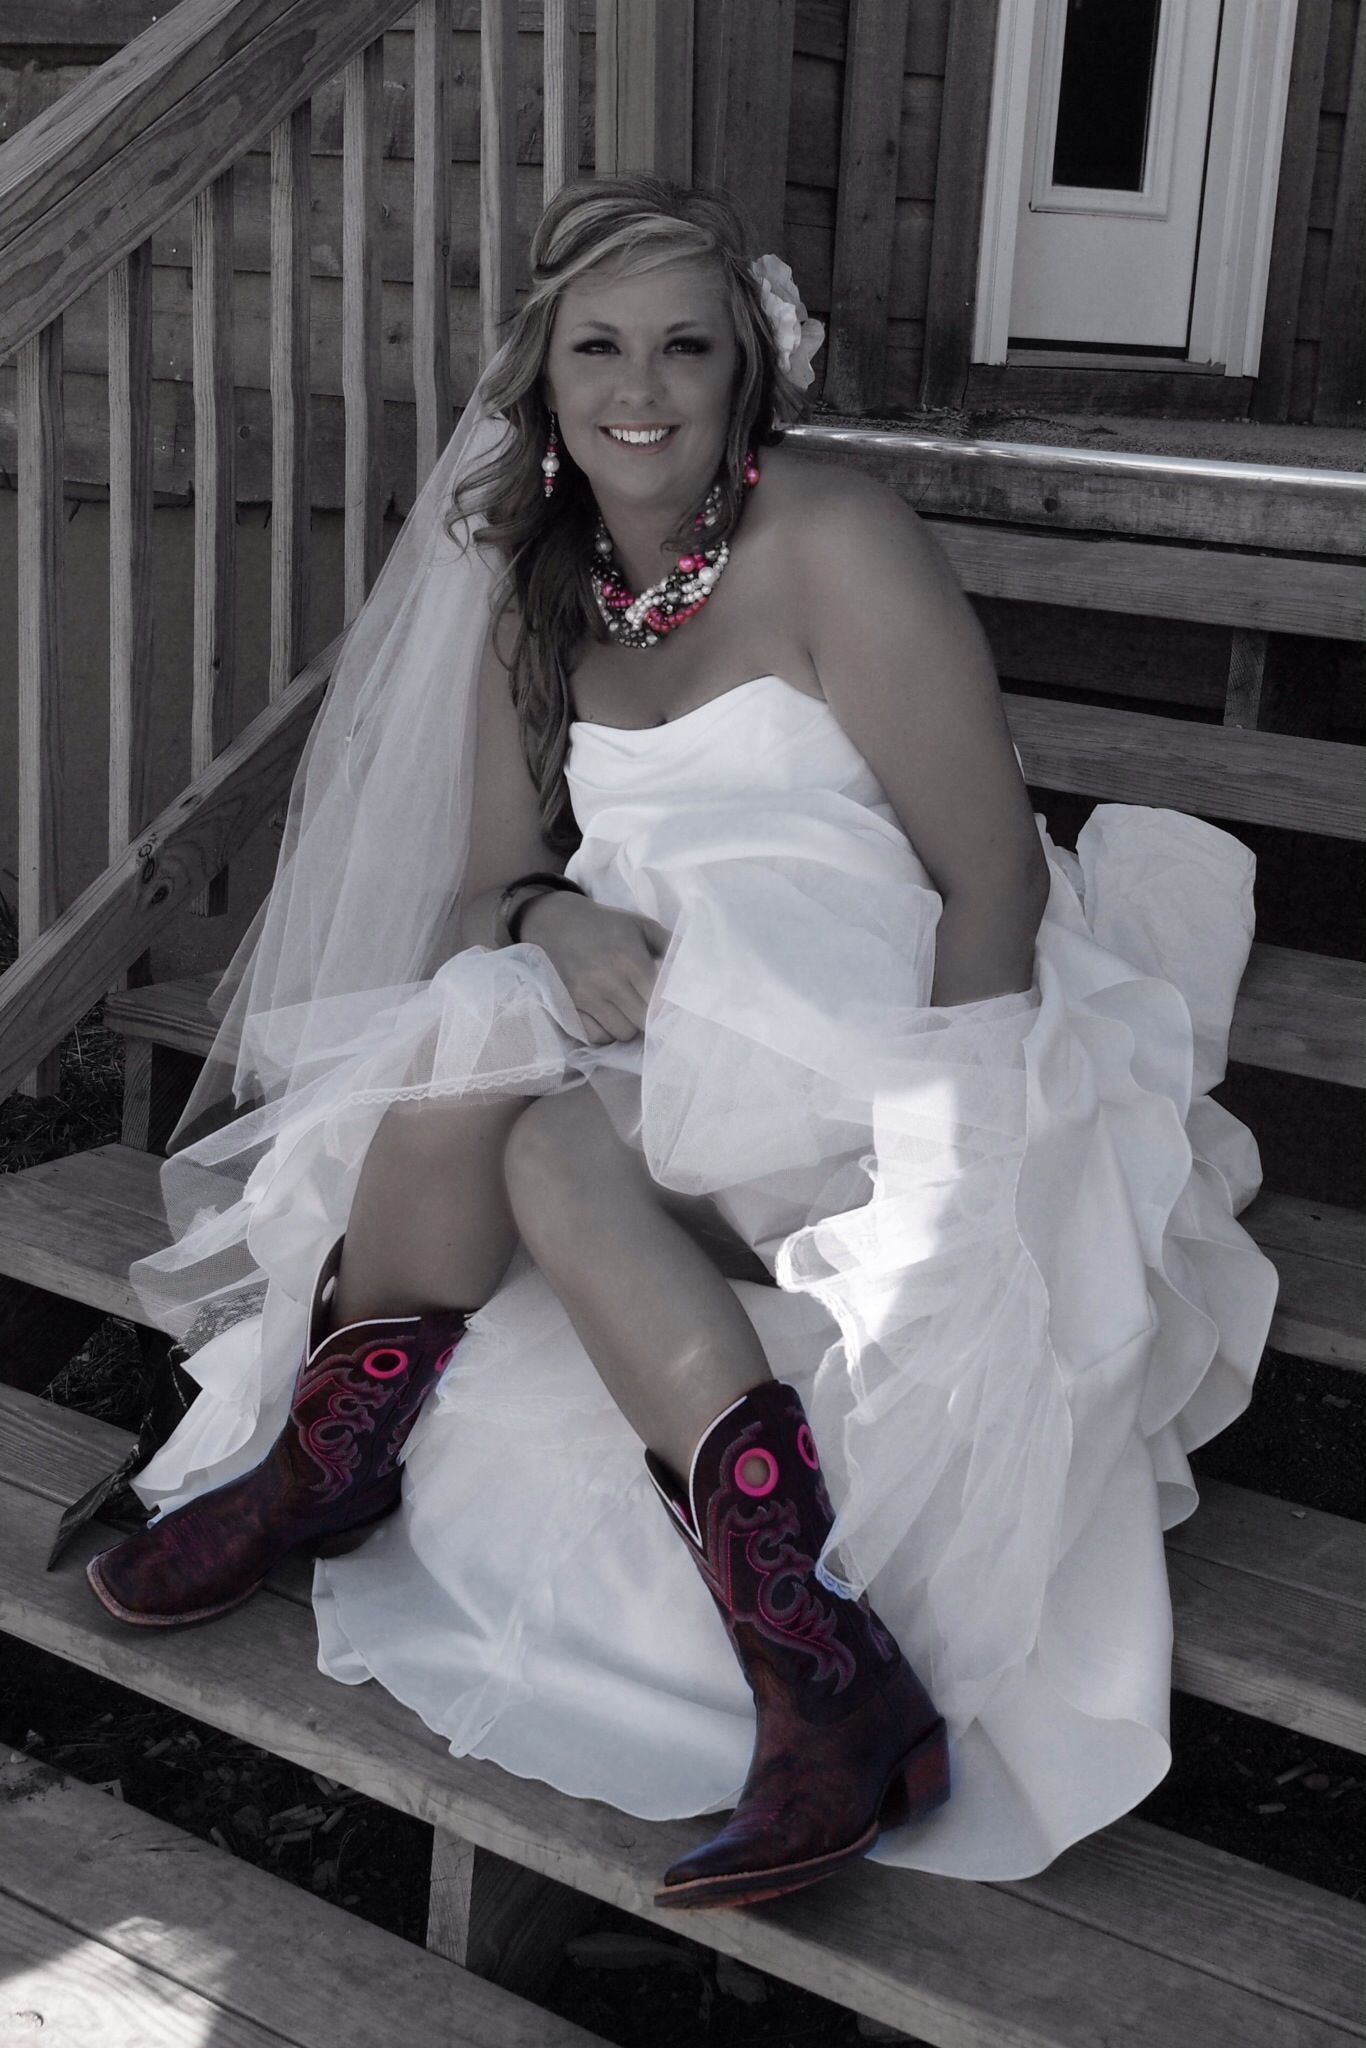 Wedding dress and boots mossy oak camo wedding ariat boots photo by